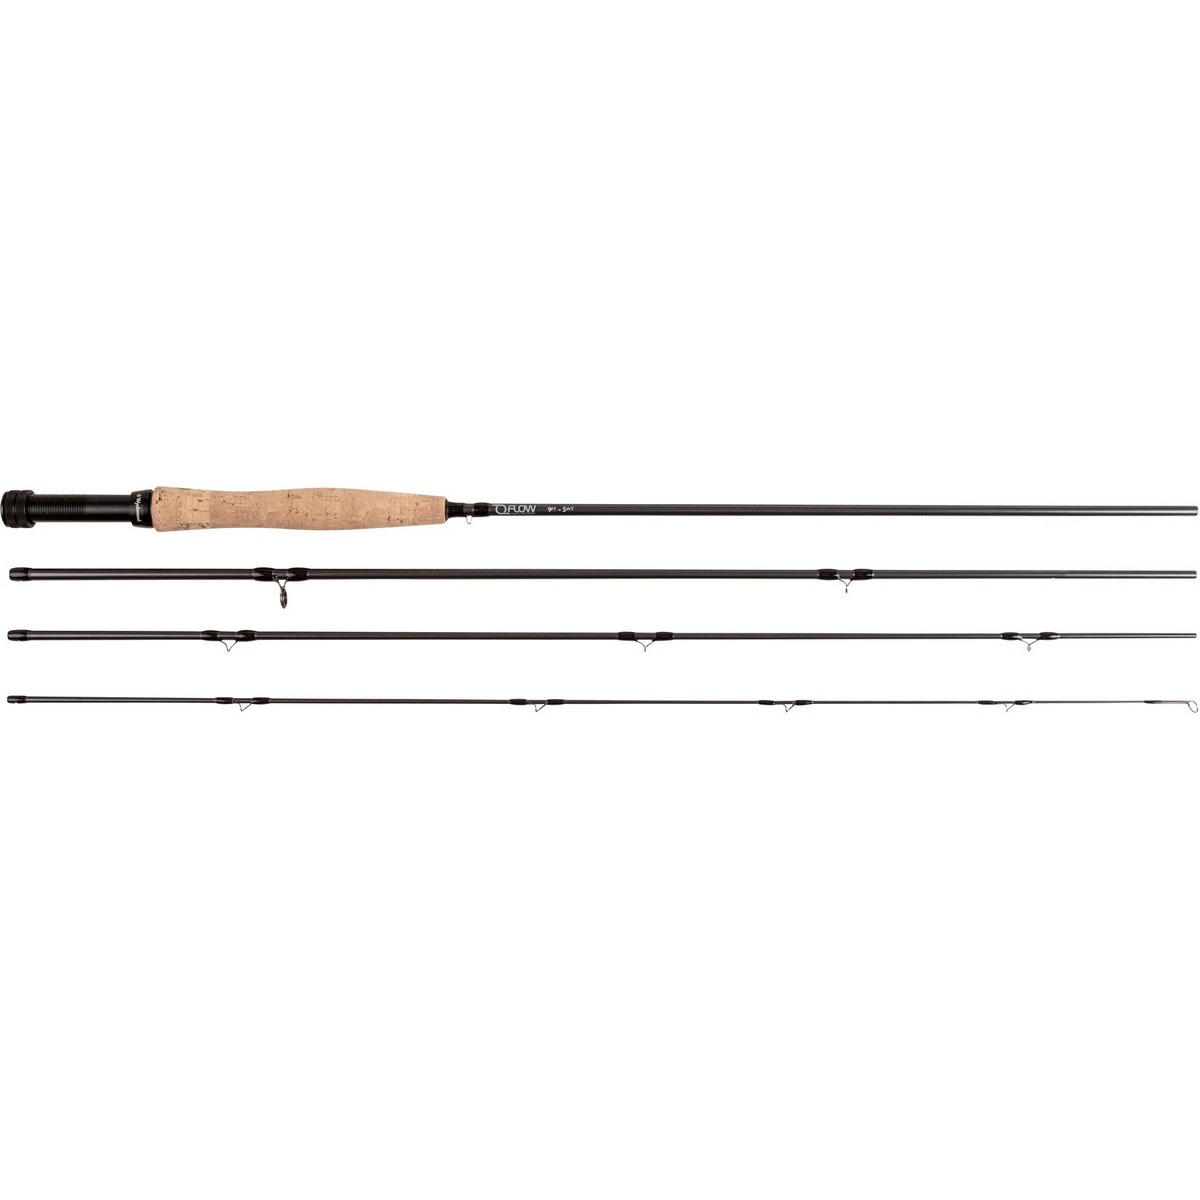 Wychwood Muškařský prut Flow Fly Rod 8,6ft, #4